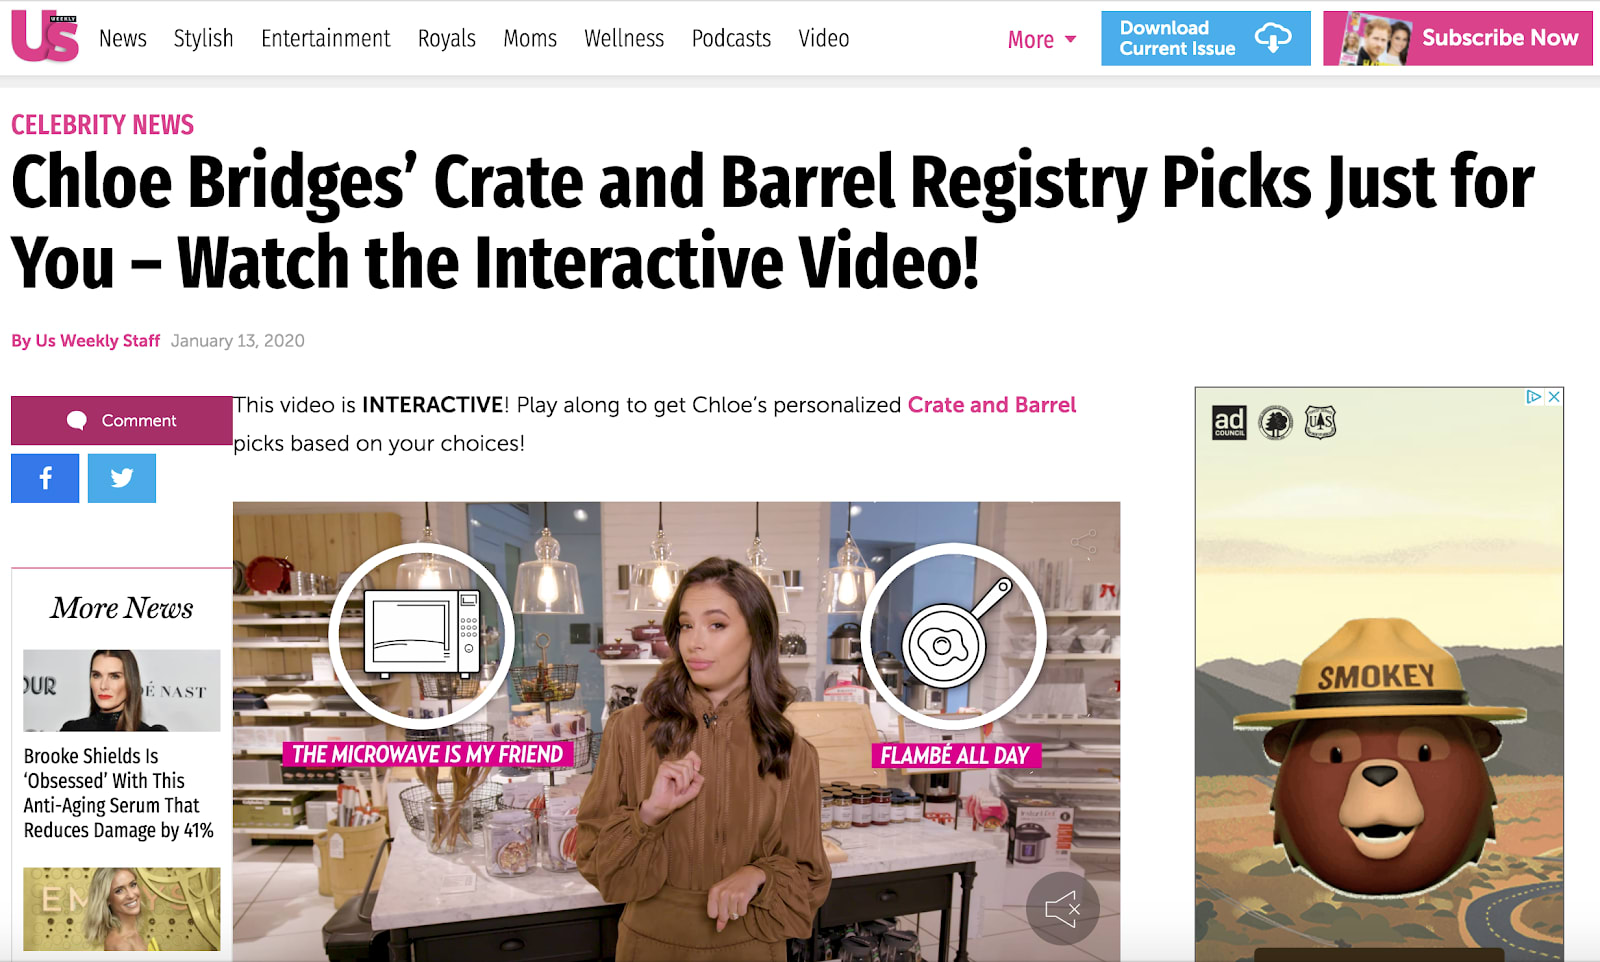 [Webinar Recap] Shoppable Video 101: How to Convert Your Viewers Into Customers